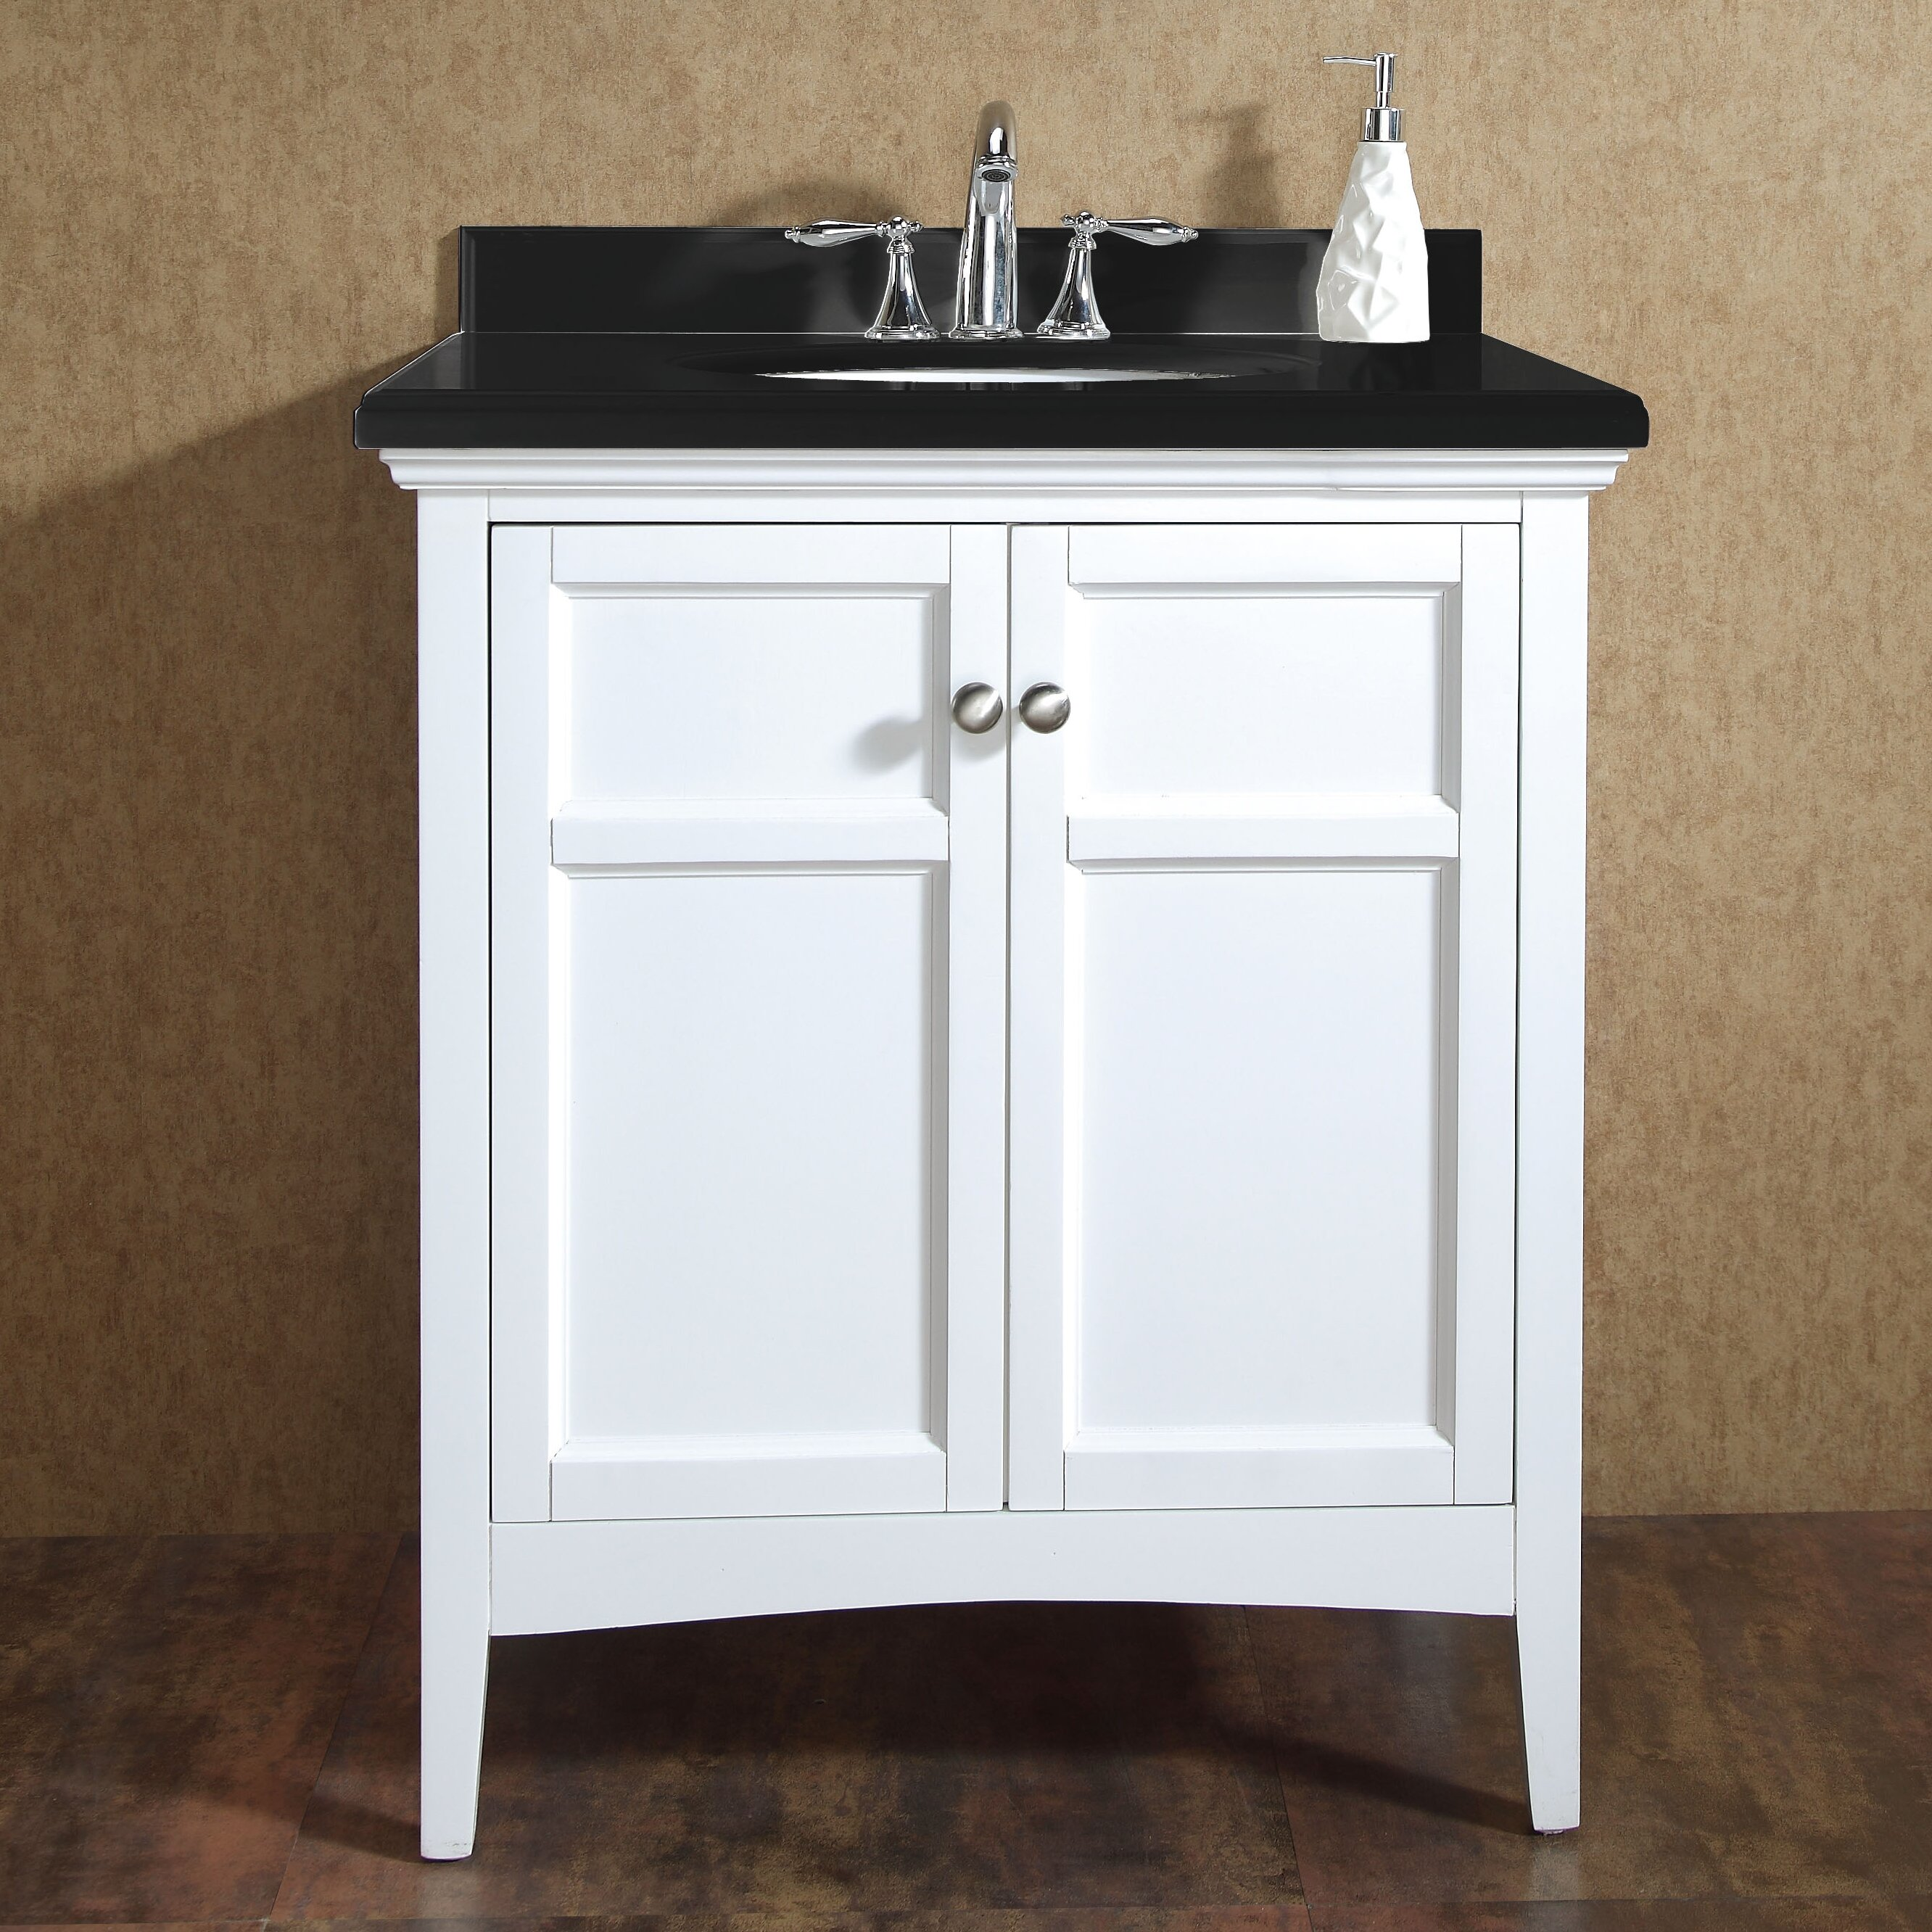 Ove Decors Campo 30 Single Bathroom Vanity Set Reviews Wayfair